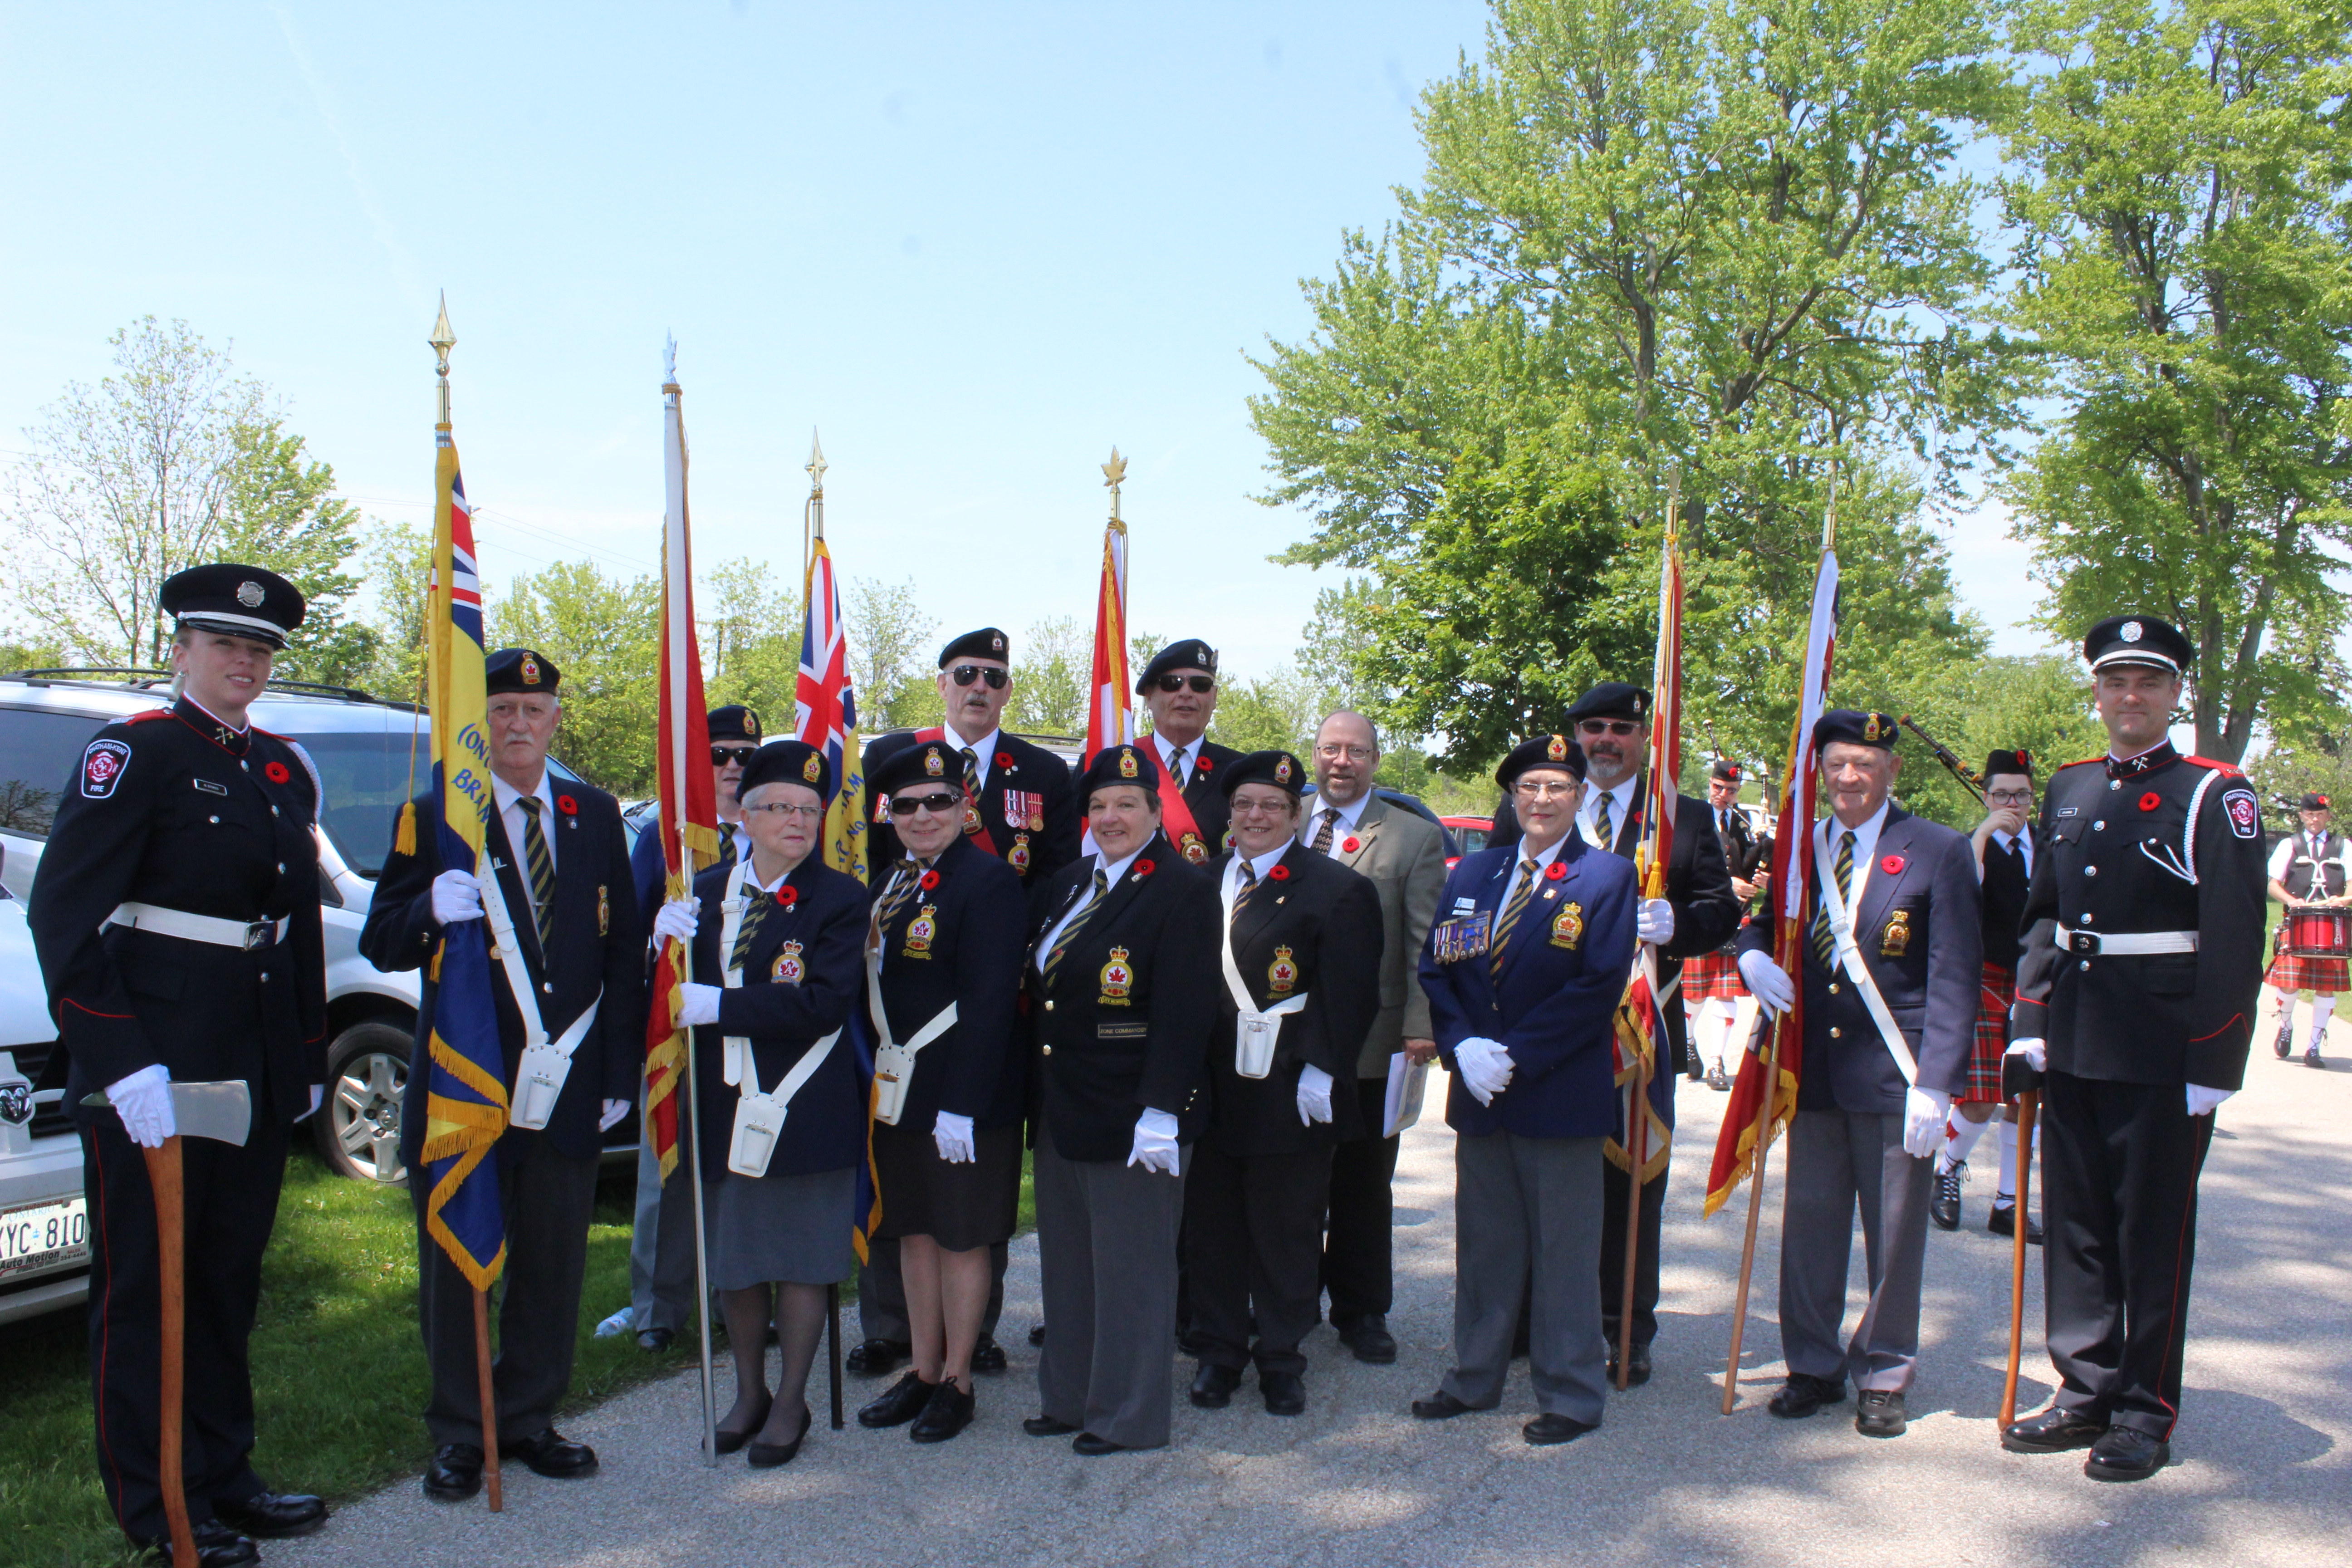 Chatham War Veterans Pay Respects to Fallen Comrades